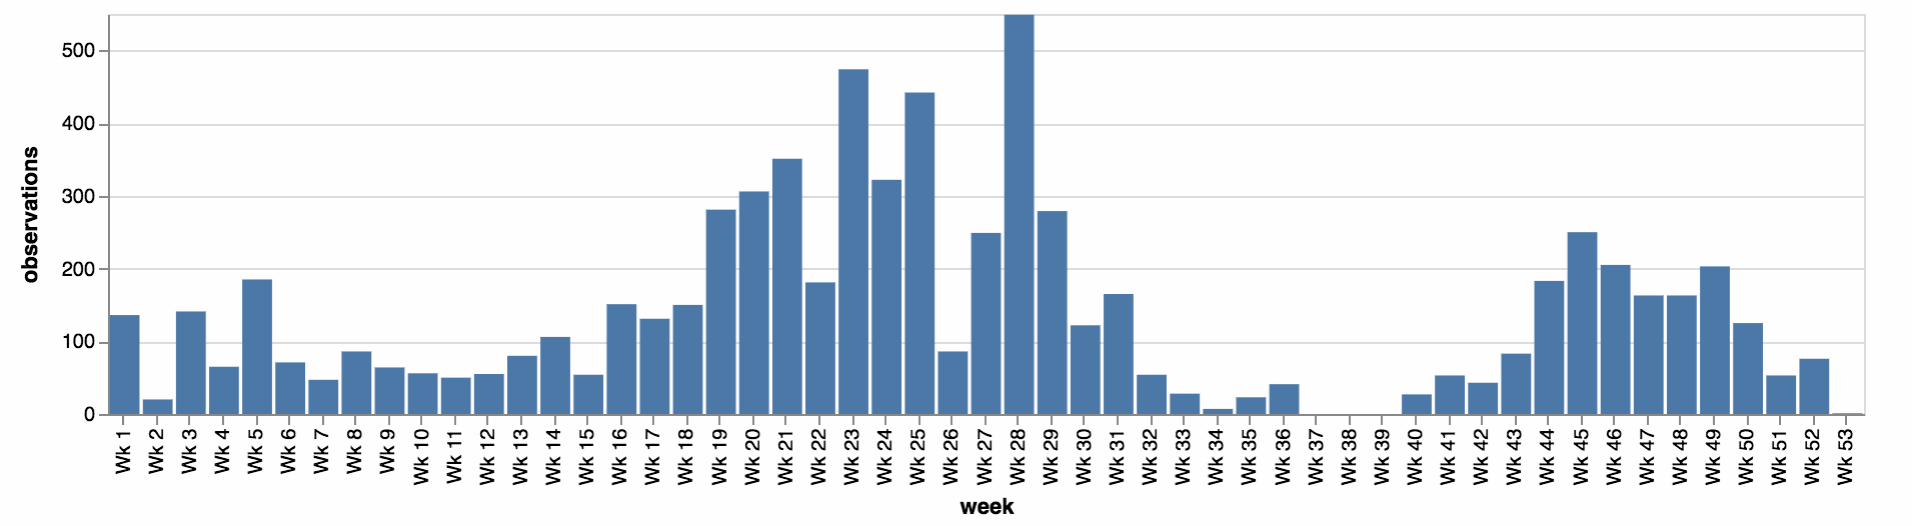 Graph showing Nudibranch observations per week in Pillar Point graph